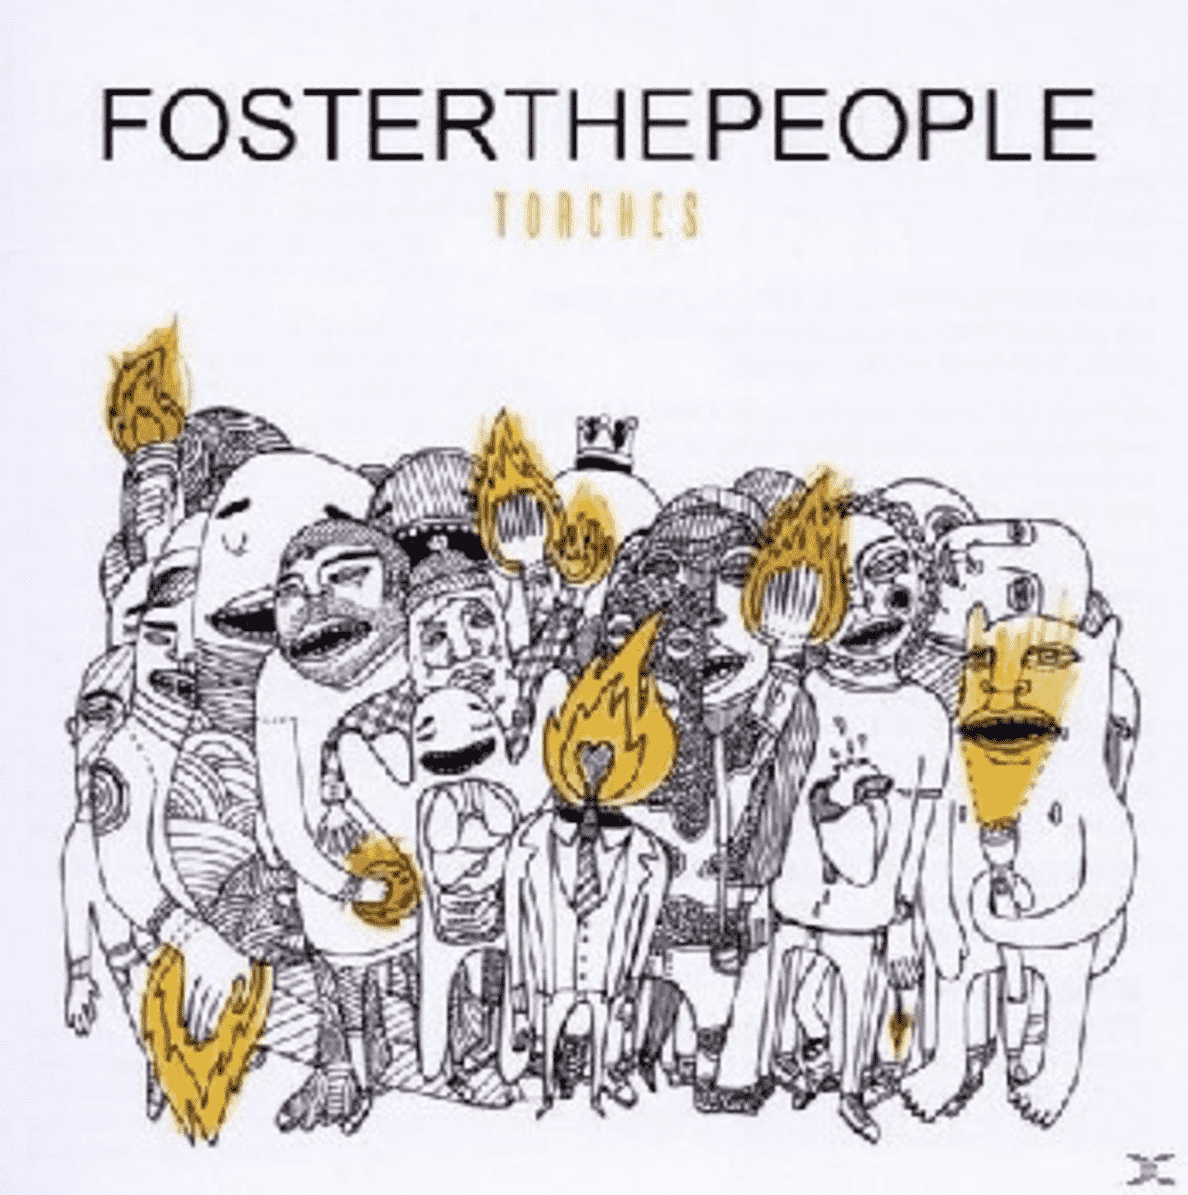 Torches Foster The People auf CD